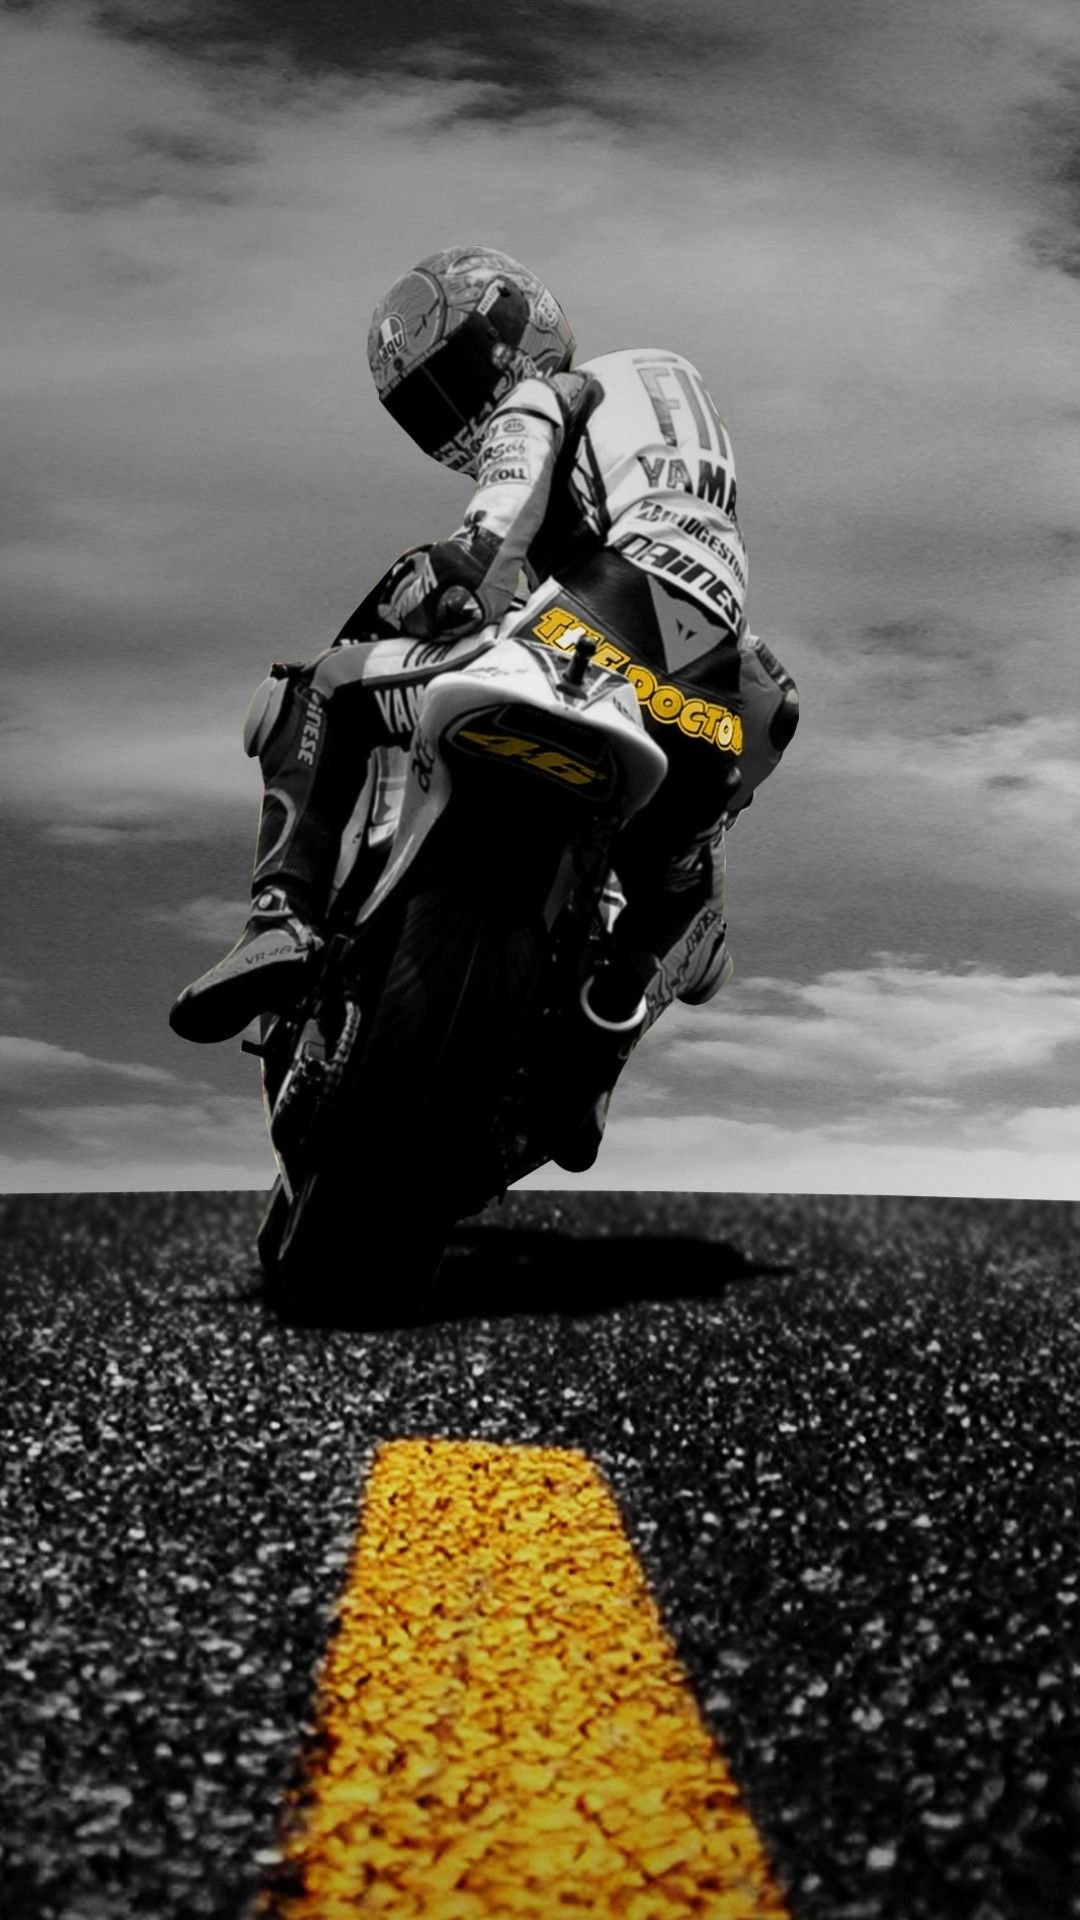 50 Motorcycle Wallpapers For Android Motorcycle Phone Wallpaper Motorcycle Wallpaper Yamaha Motorbikes Sports Bikes Motorcycles